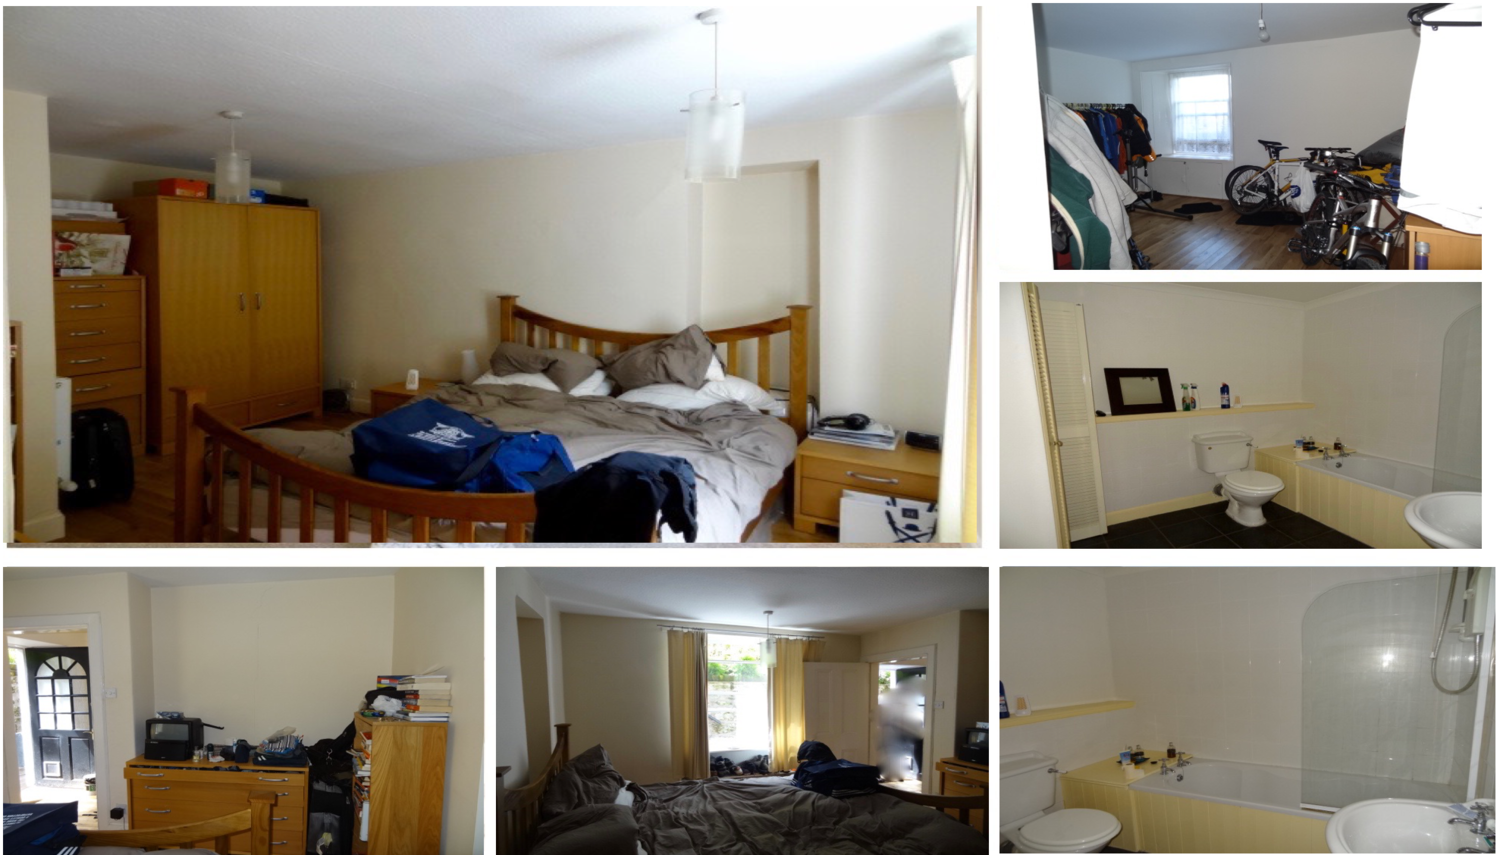 House transformation before and after